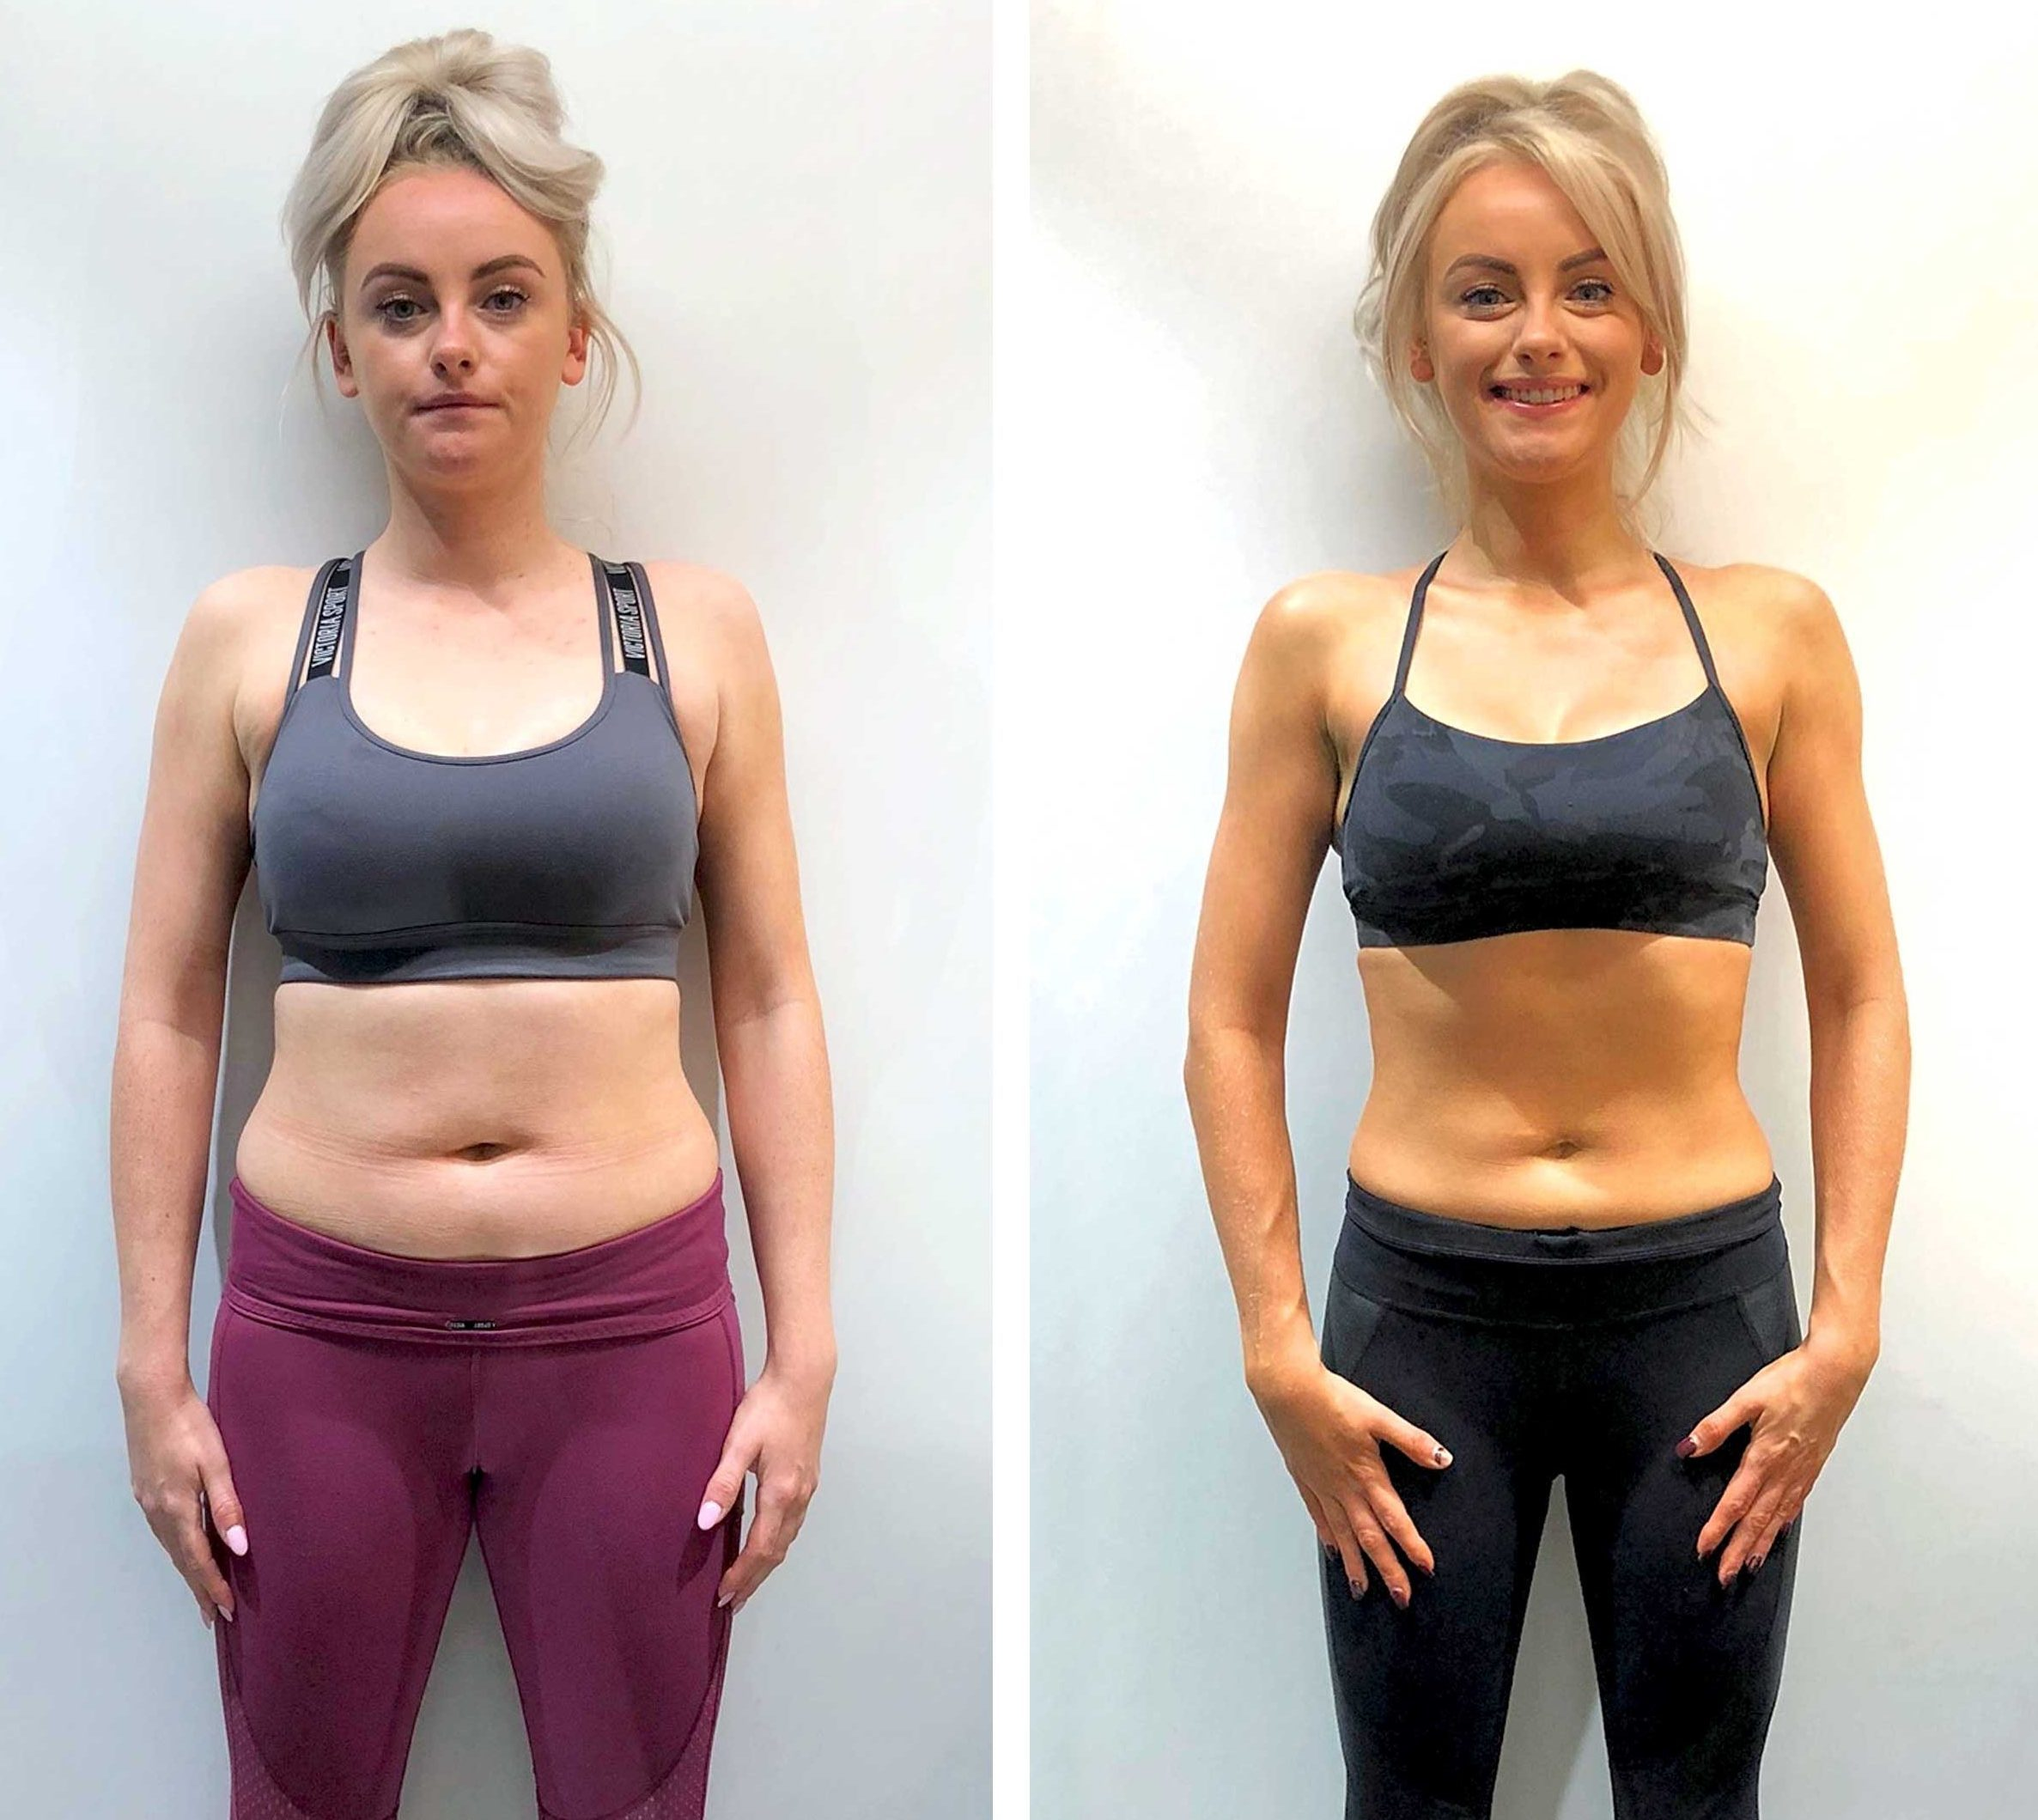 c diff weight loss